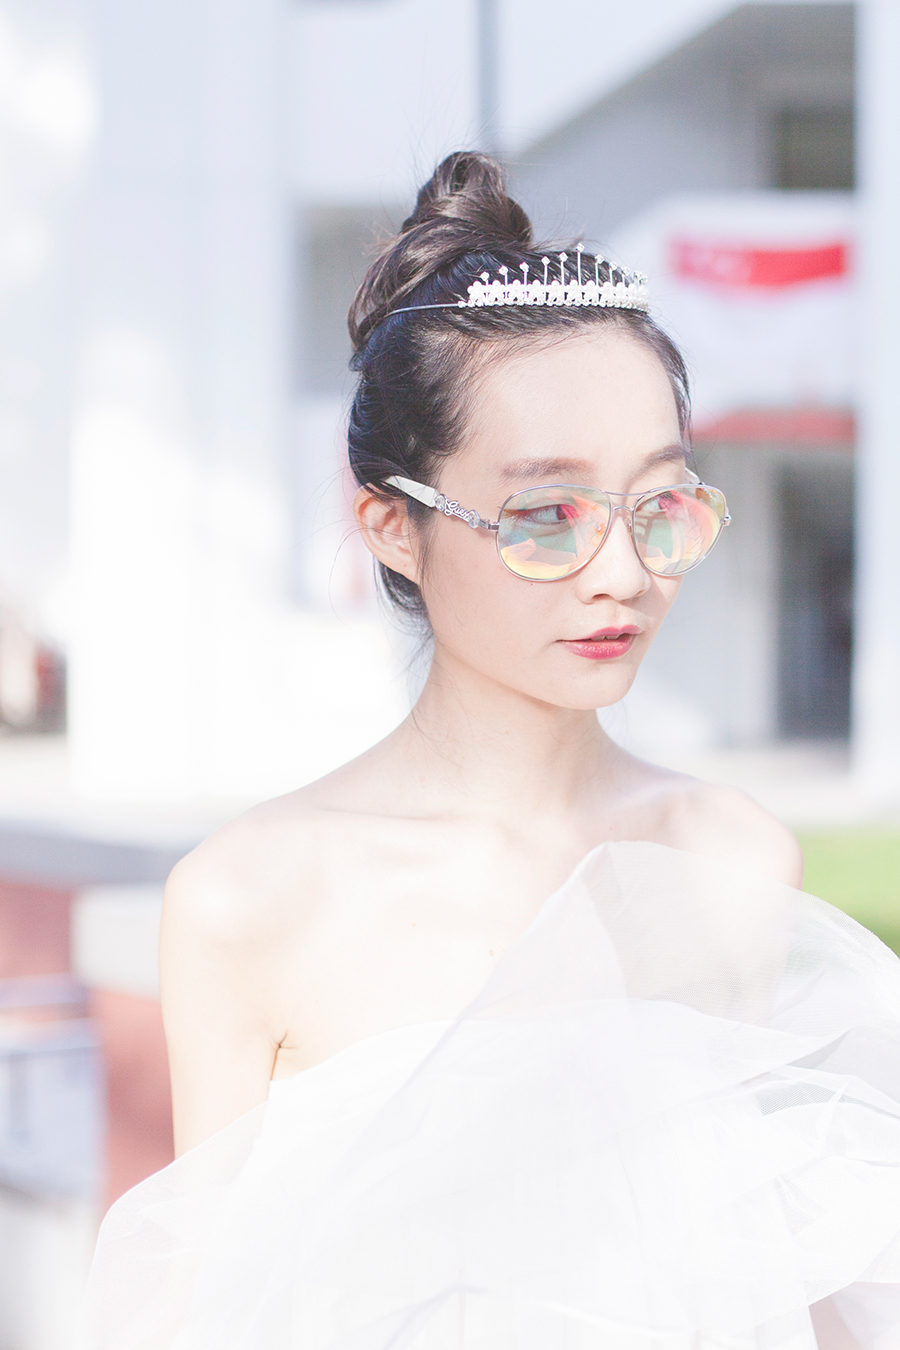 Princess outfit: Irresistible Me silver Aurora Tiara hair accessory, DressLink white tulle tutu skirt, Guess iridescent sunglasses.